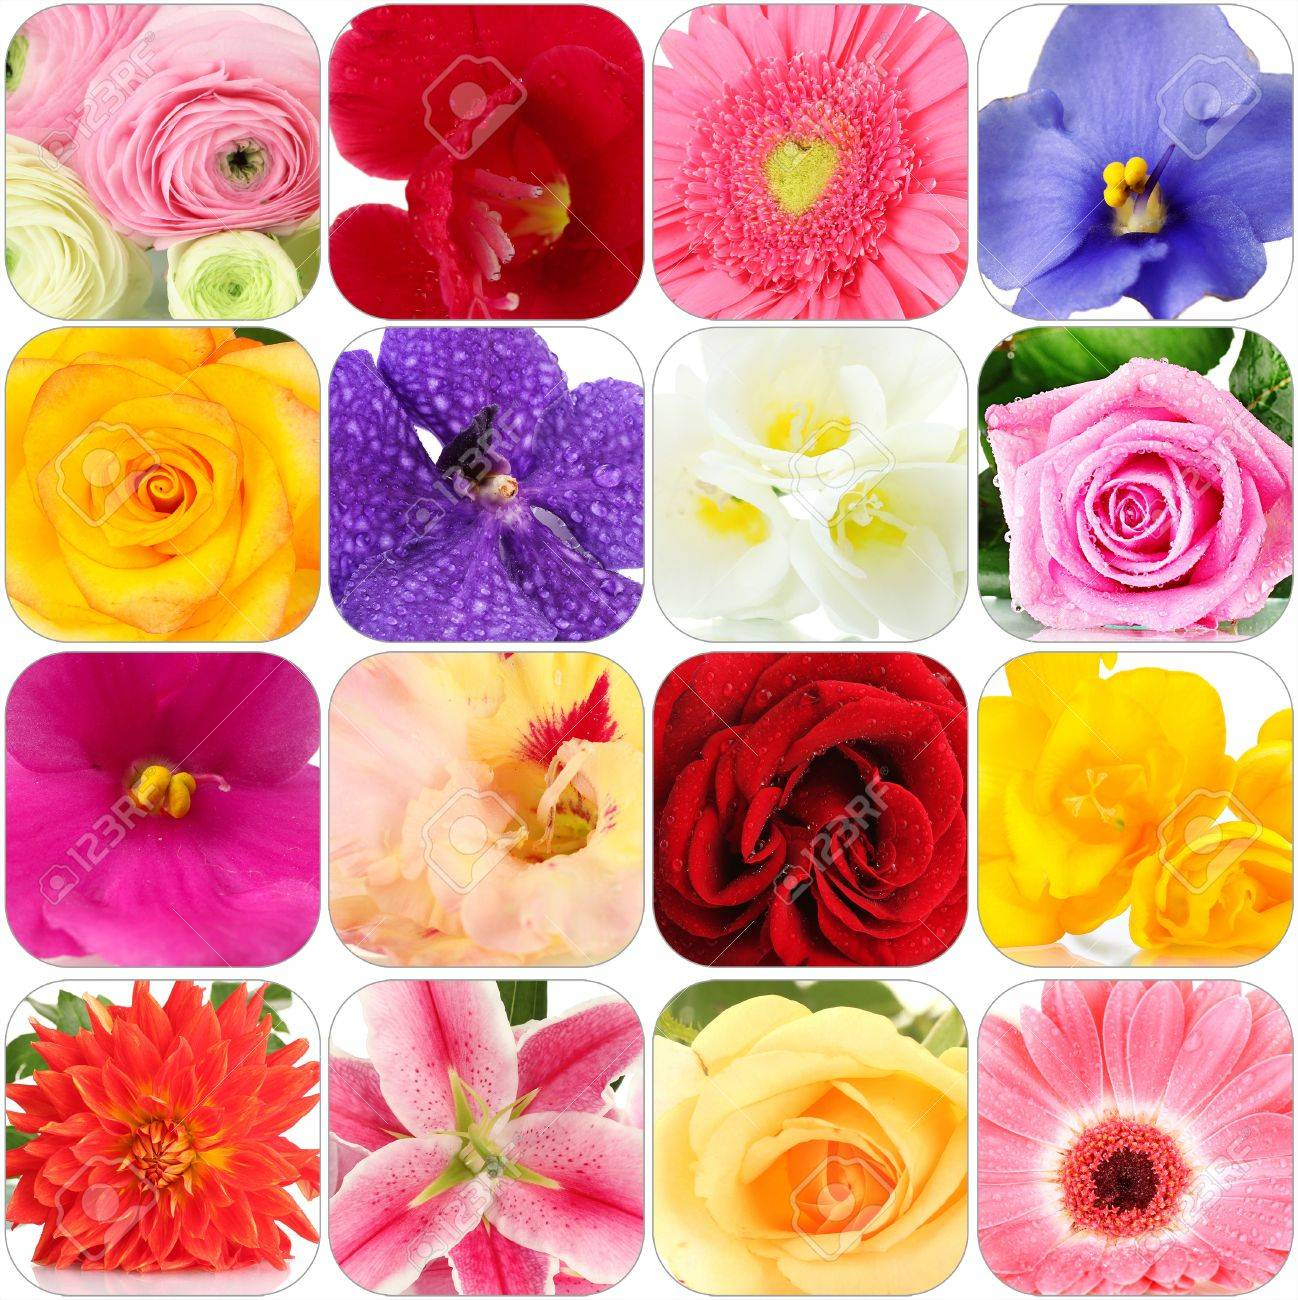 Collage of different beautiful flowers stock photo picture and collage of different beautiful flowers stock photo 22182178 izmirmasajfo